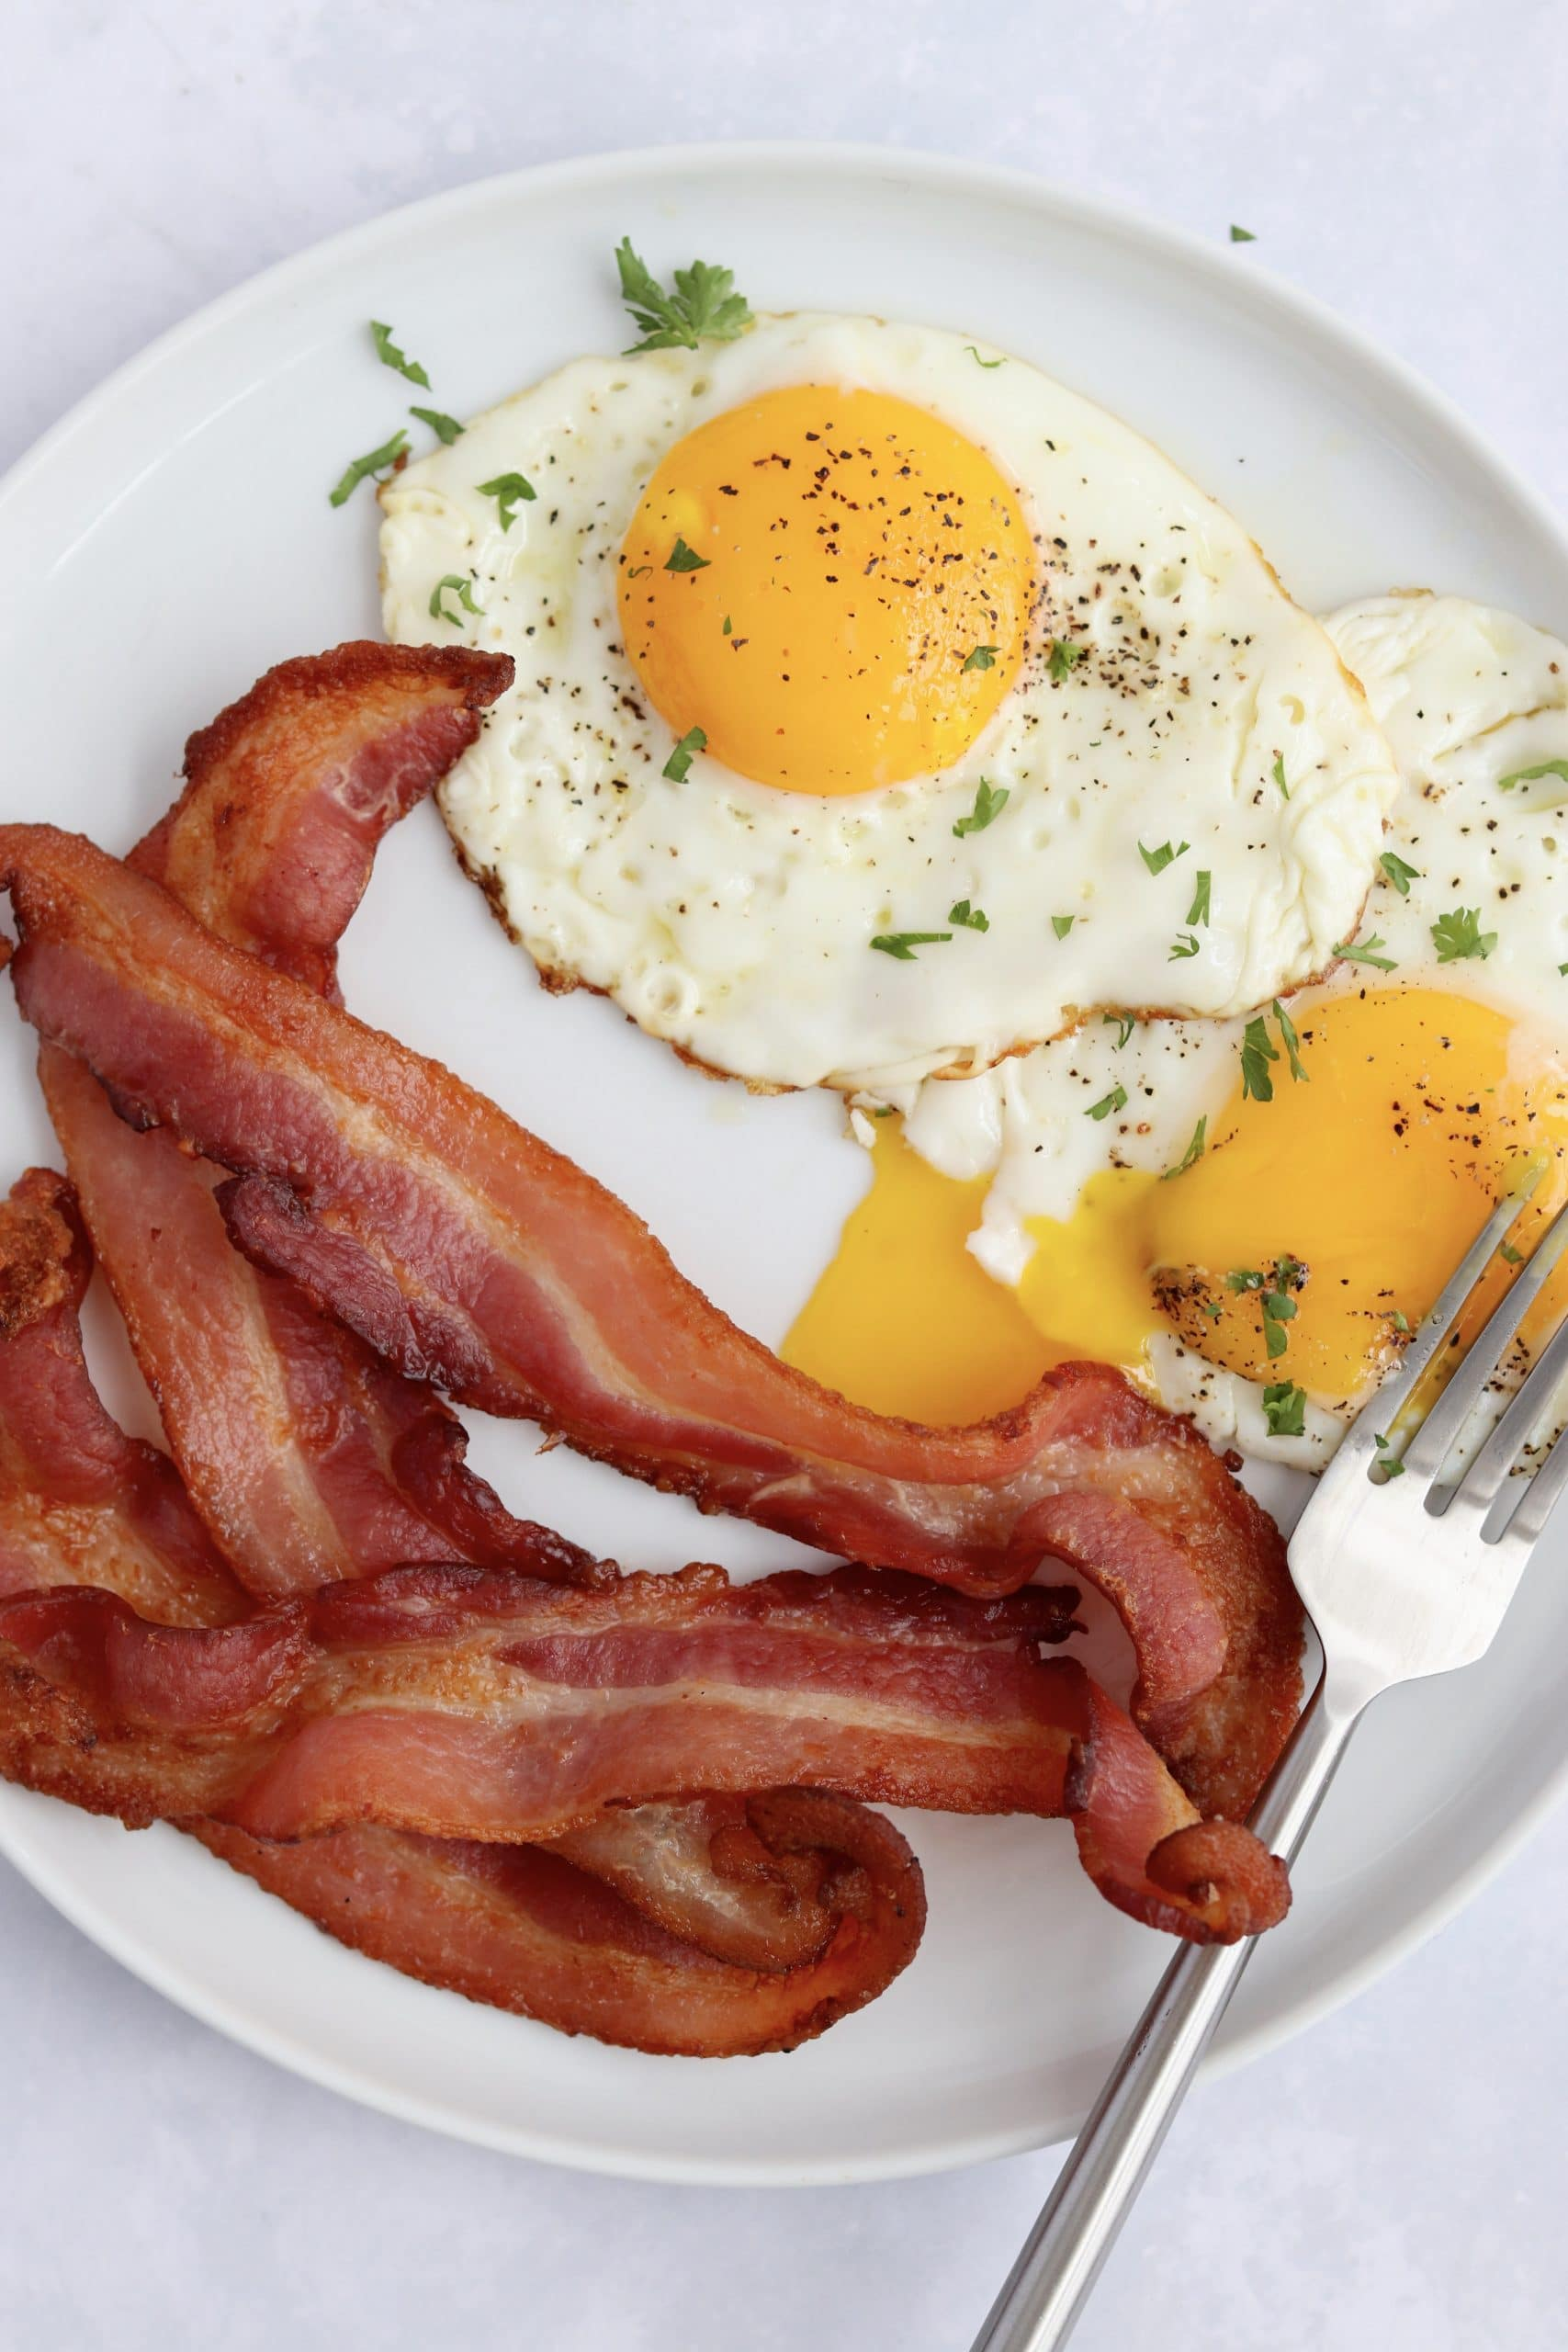 crispy air fryer bacon and sunny side up eggs on a plate